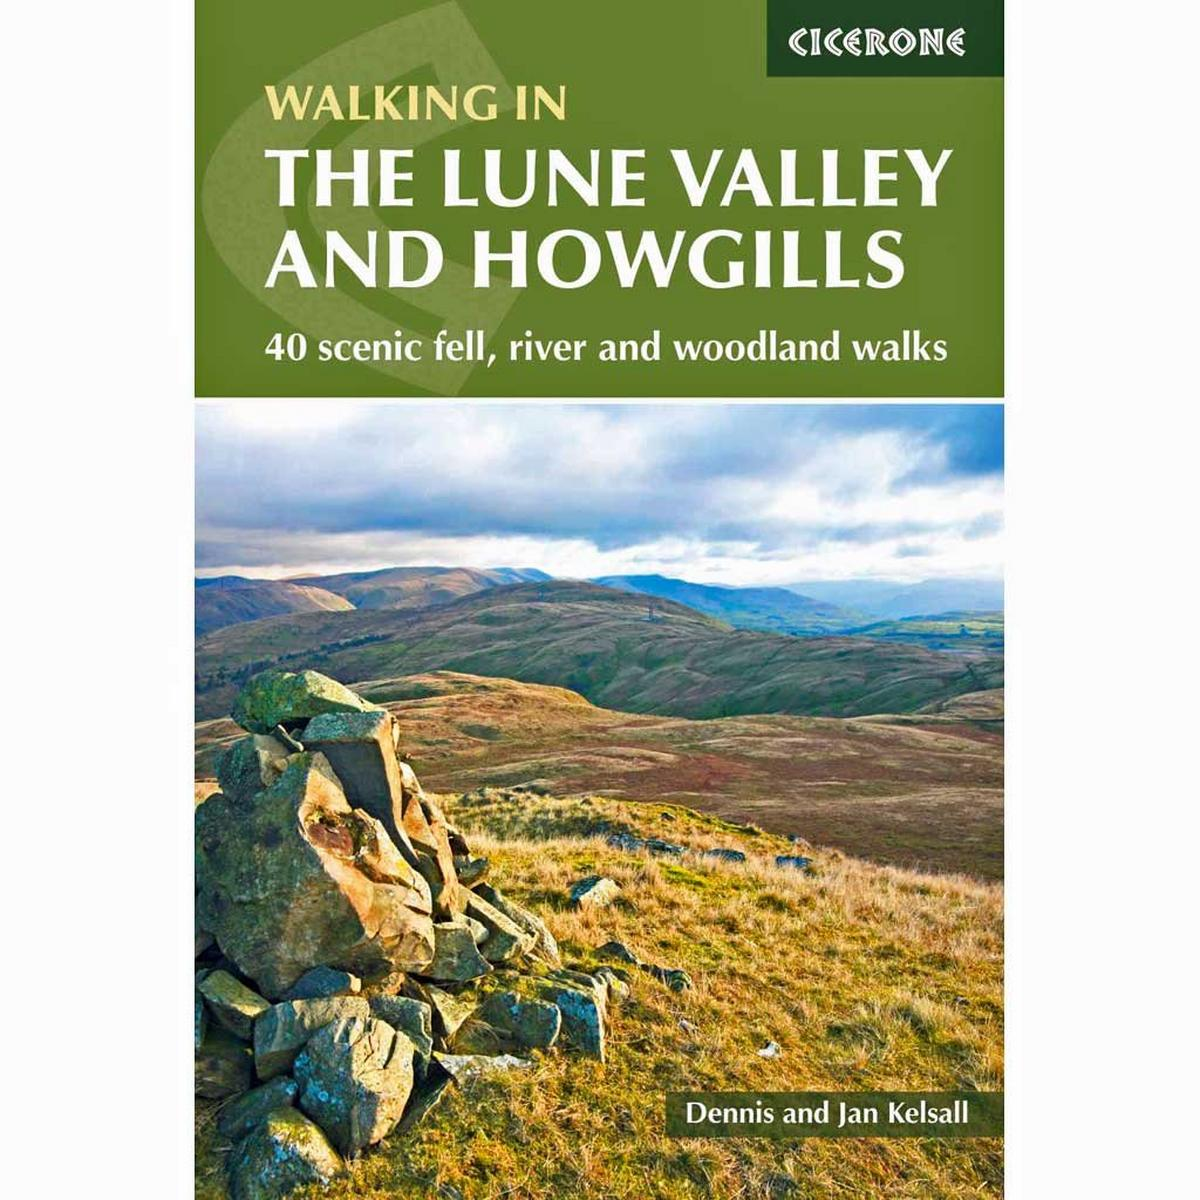 Cicerone Guide Book: Walking in The Lune Valley and Howgills